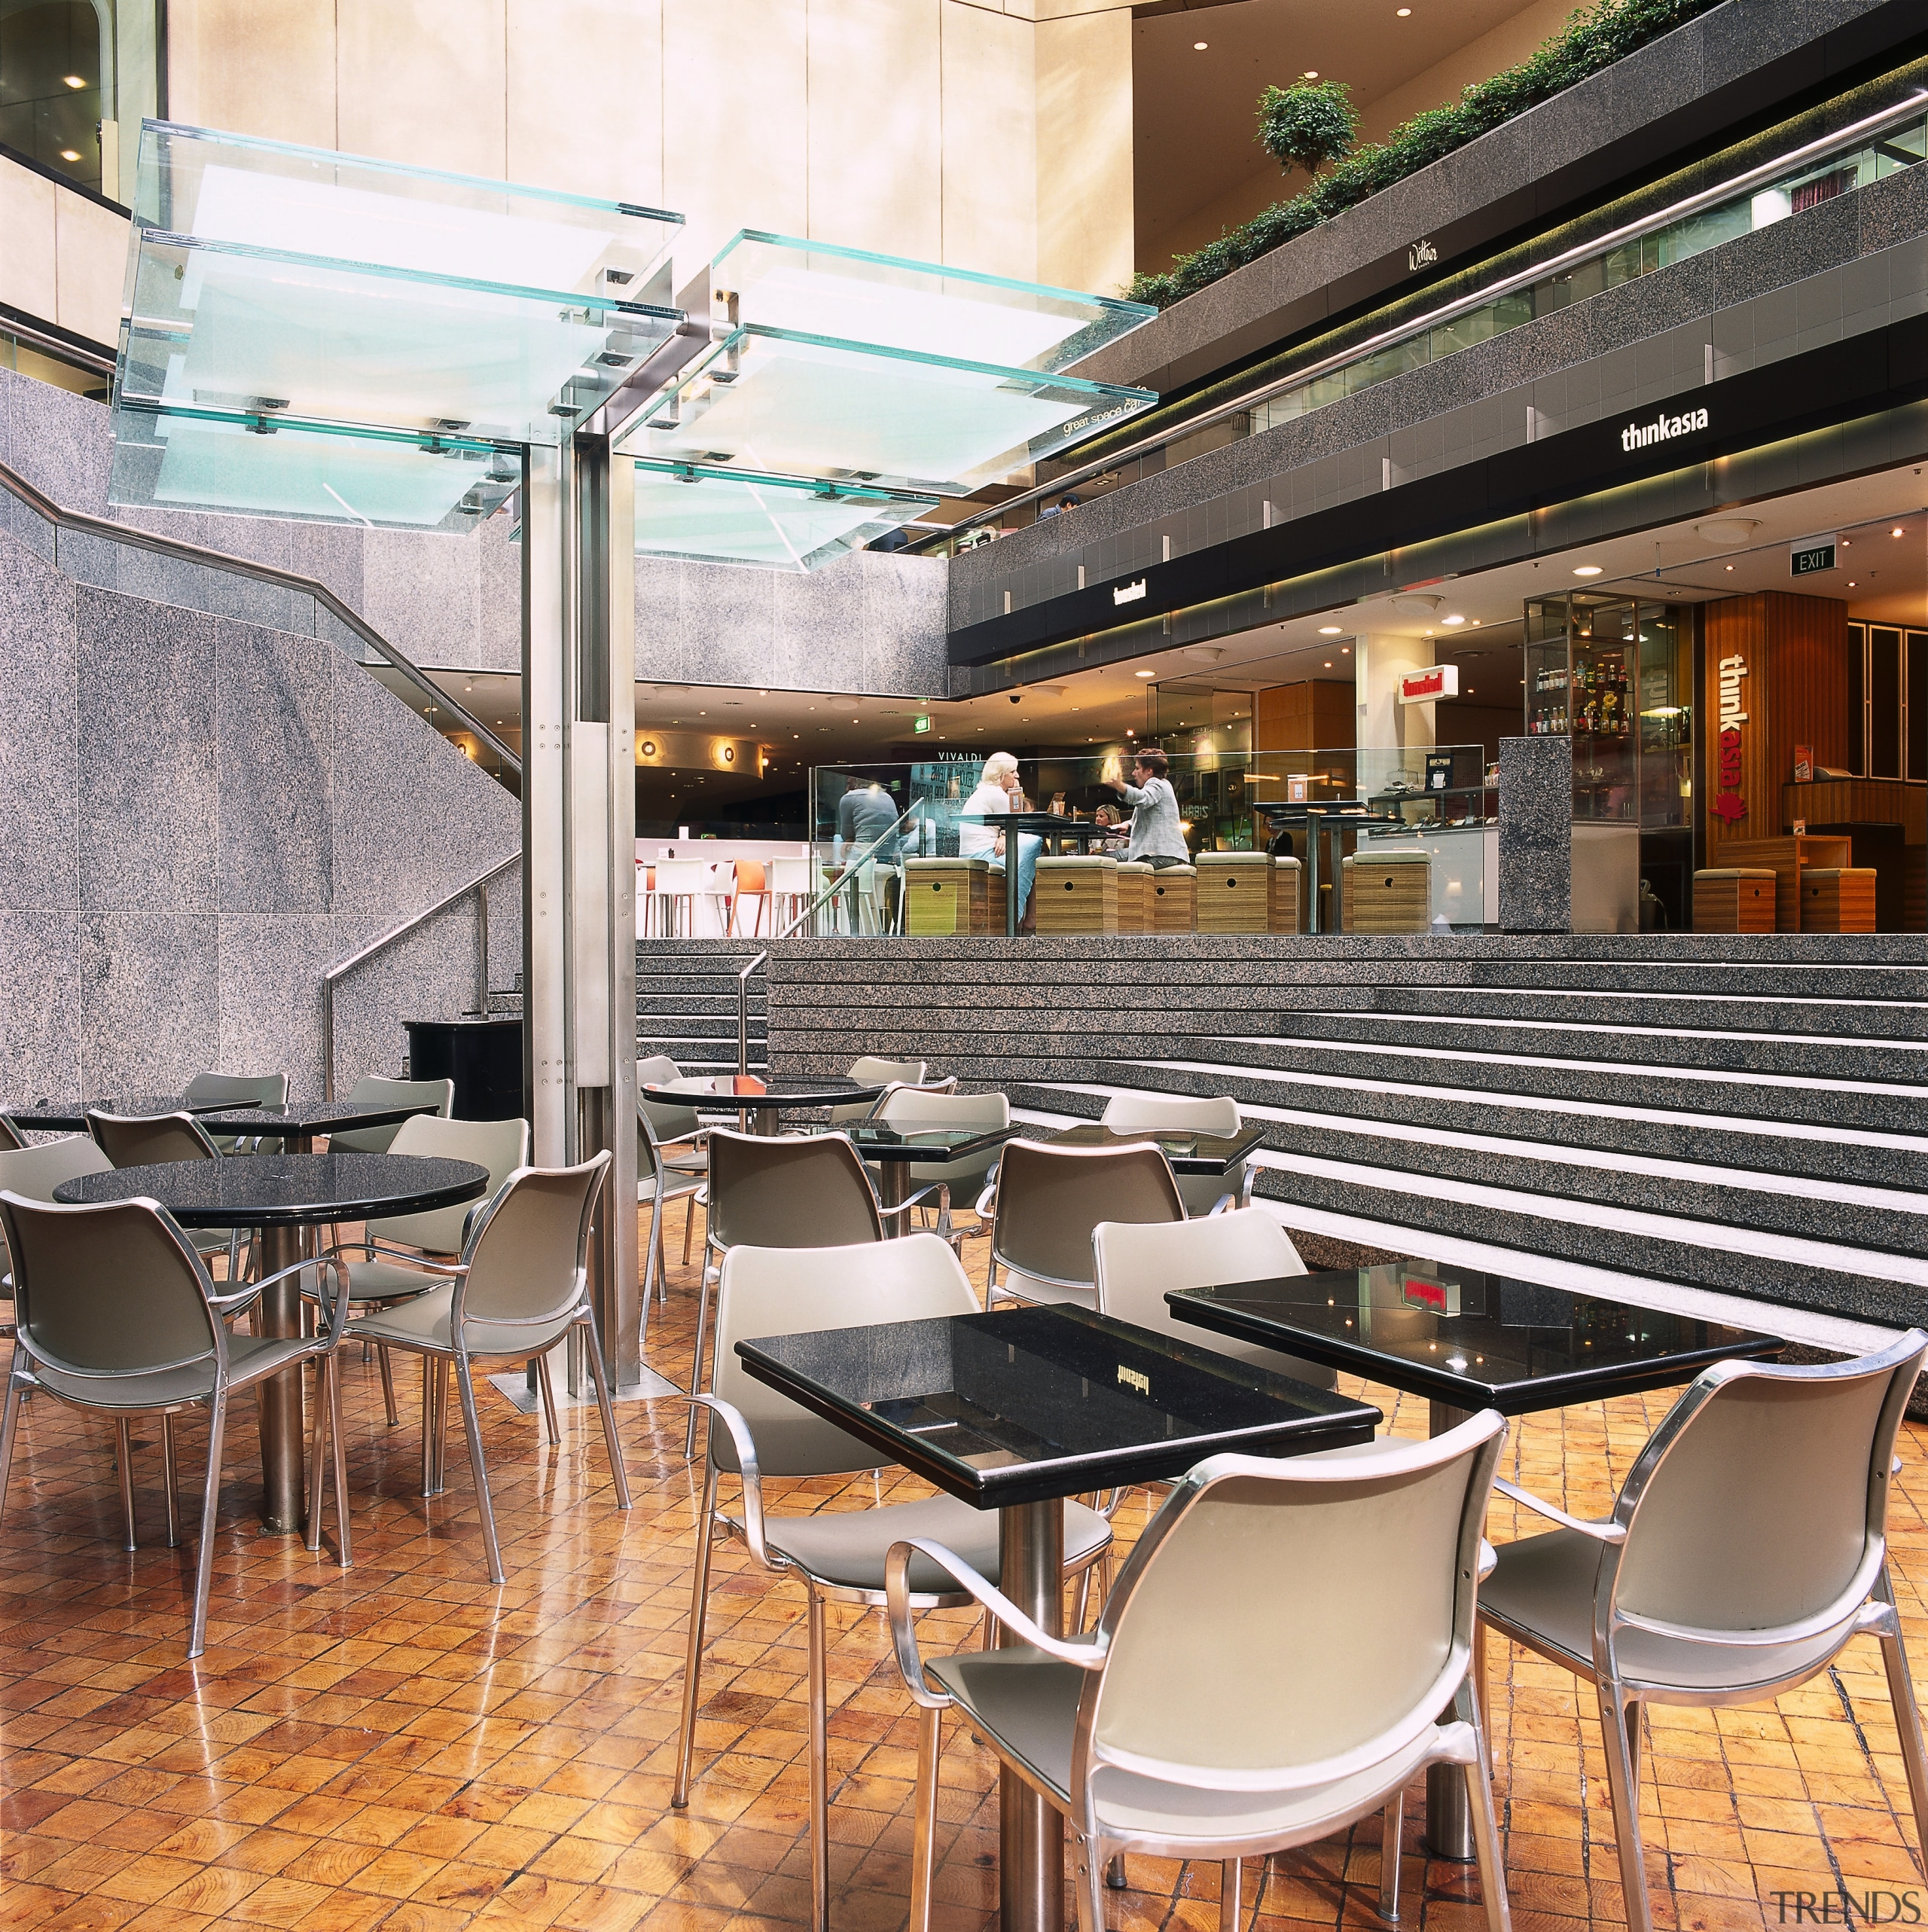 A close up view of the seating used café, interior design, restaurant, table, white